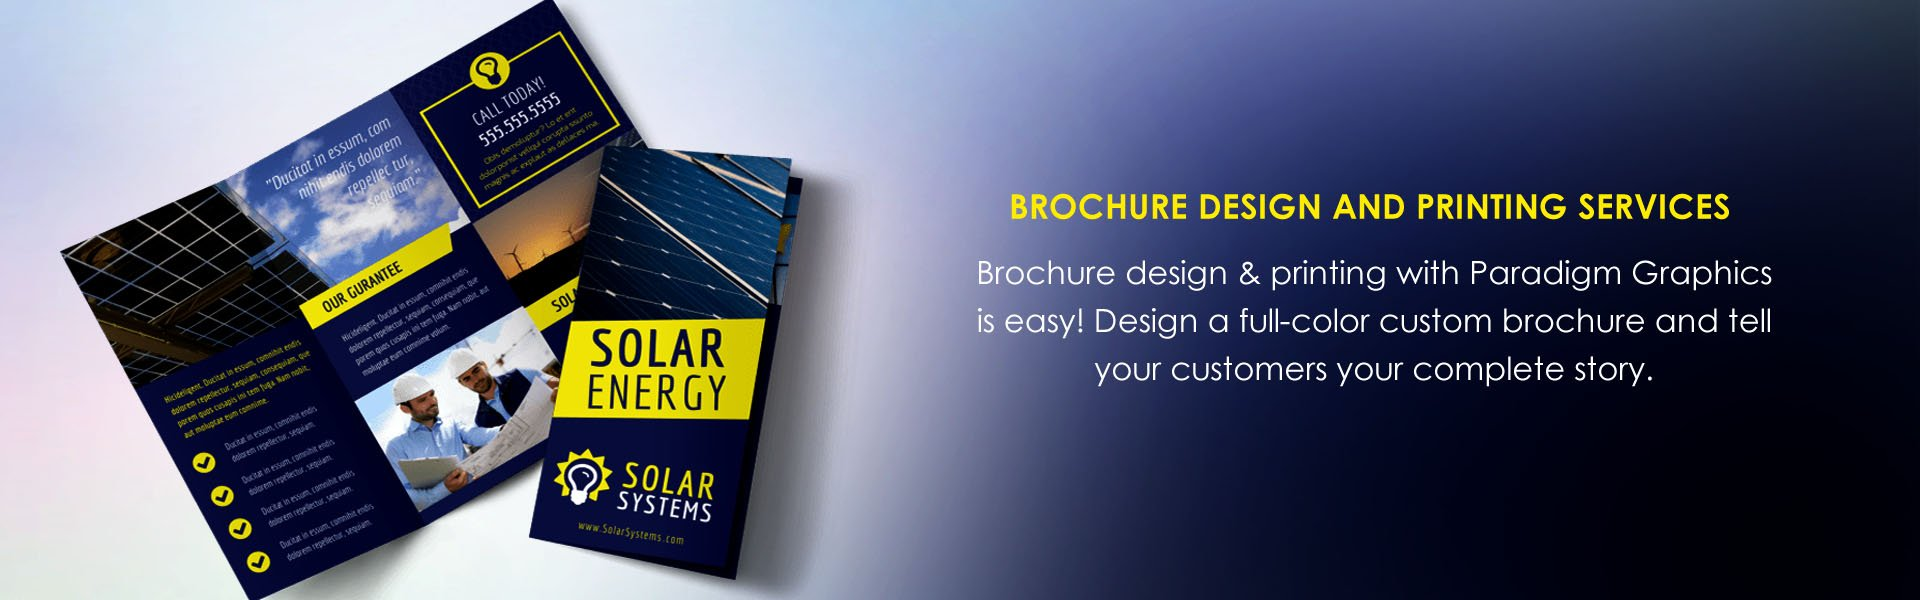 best Brochure design and printing services